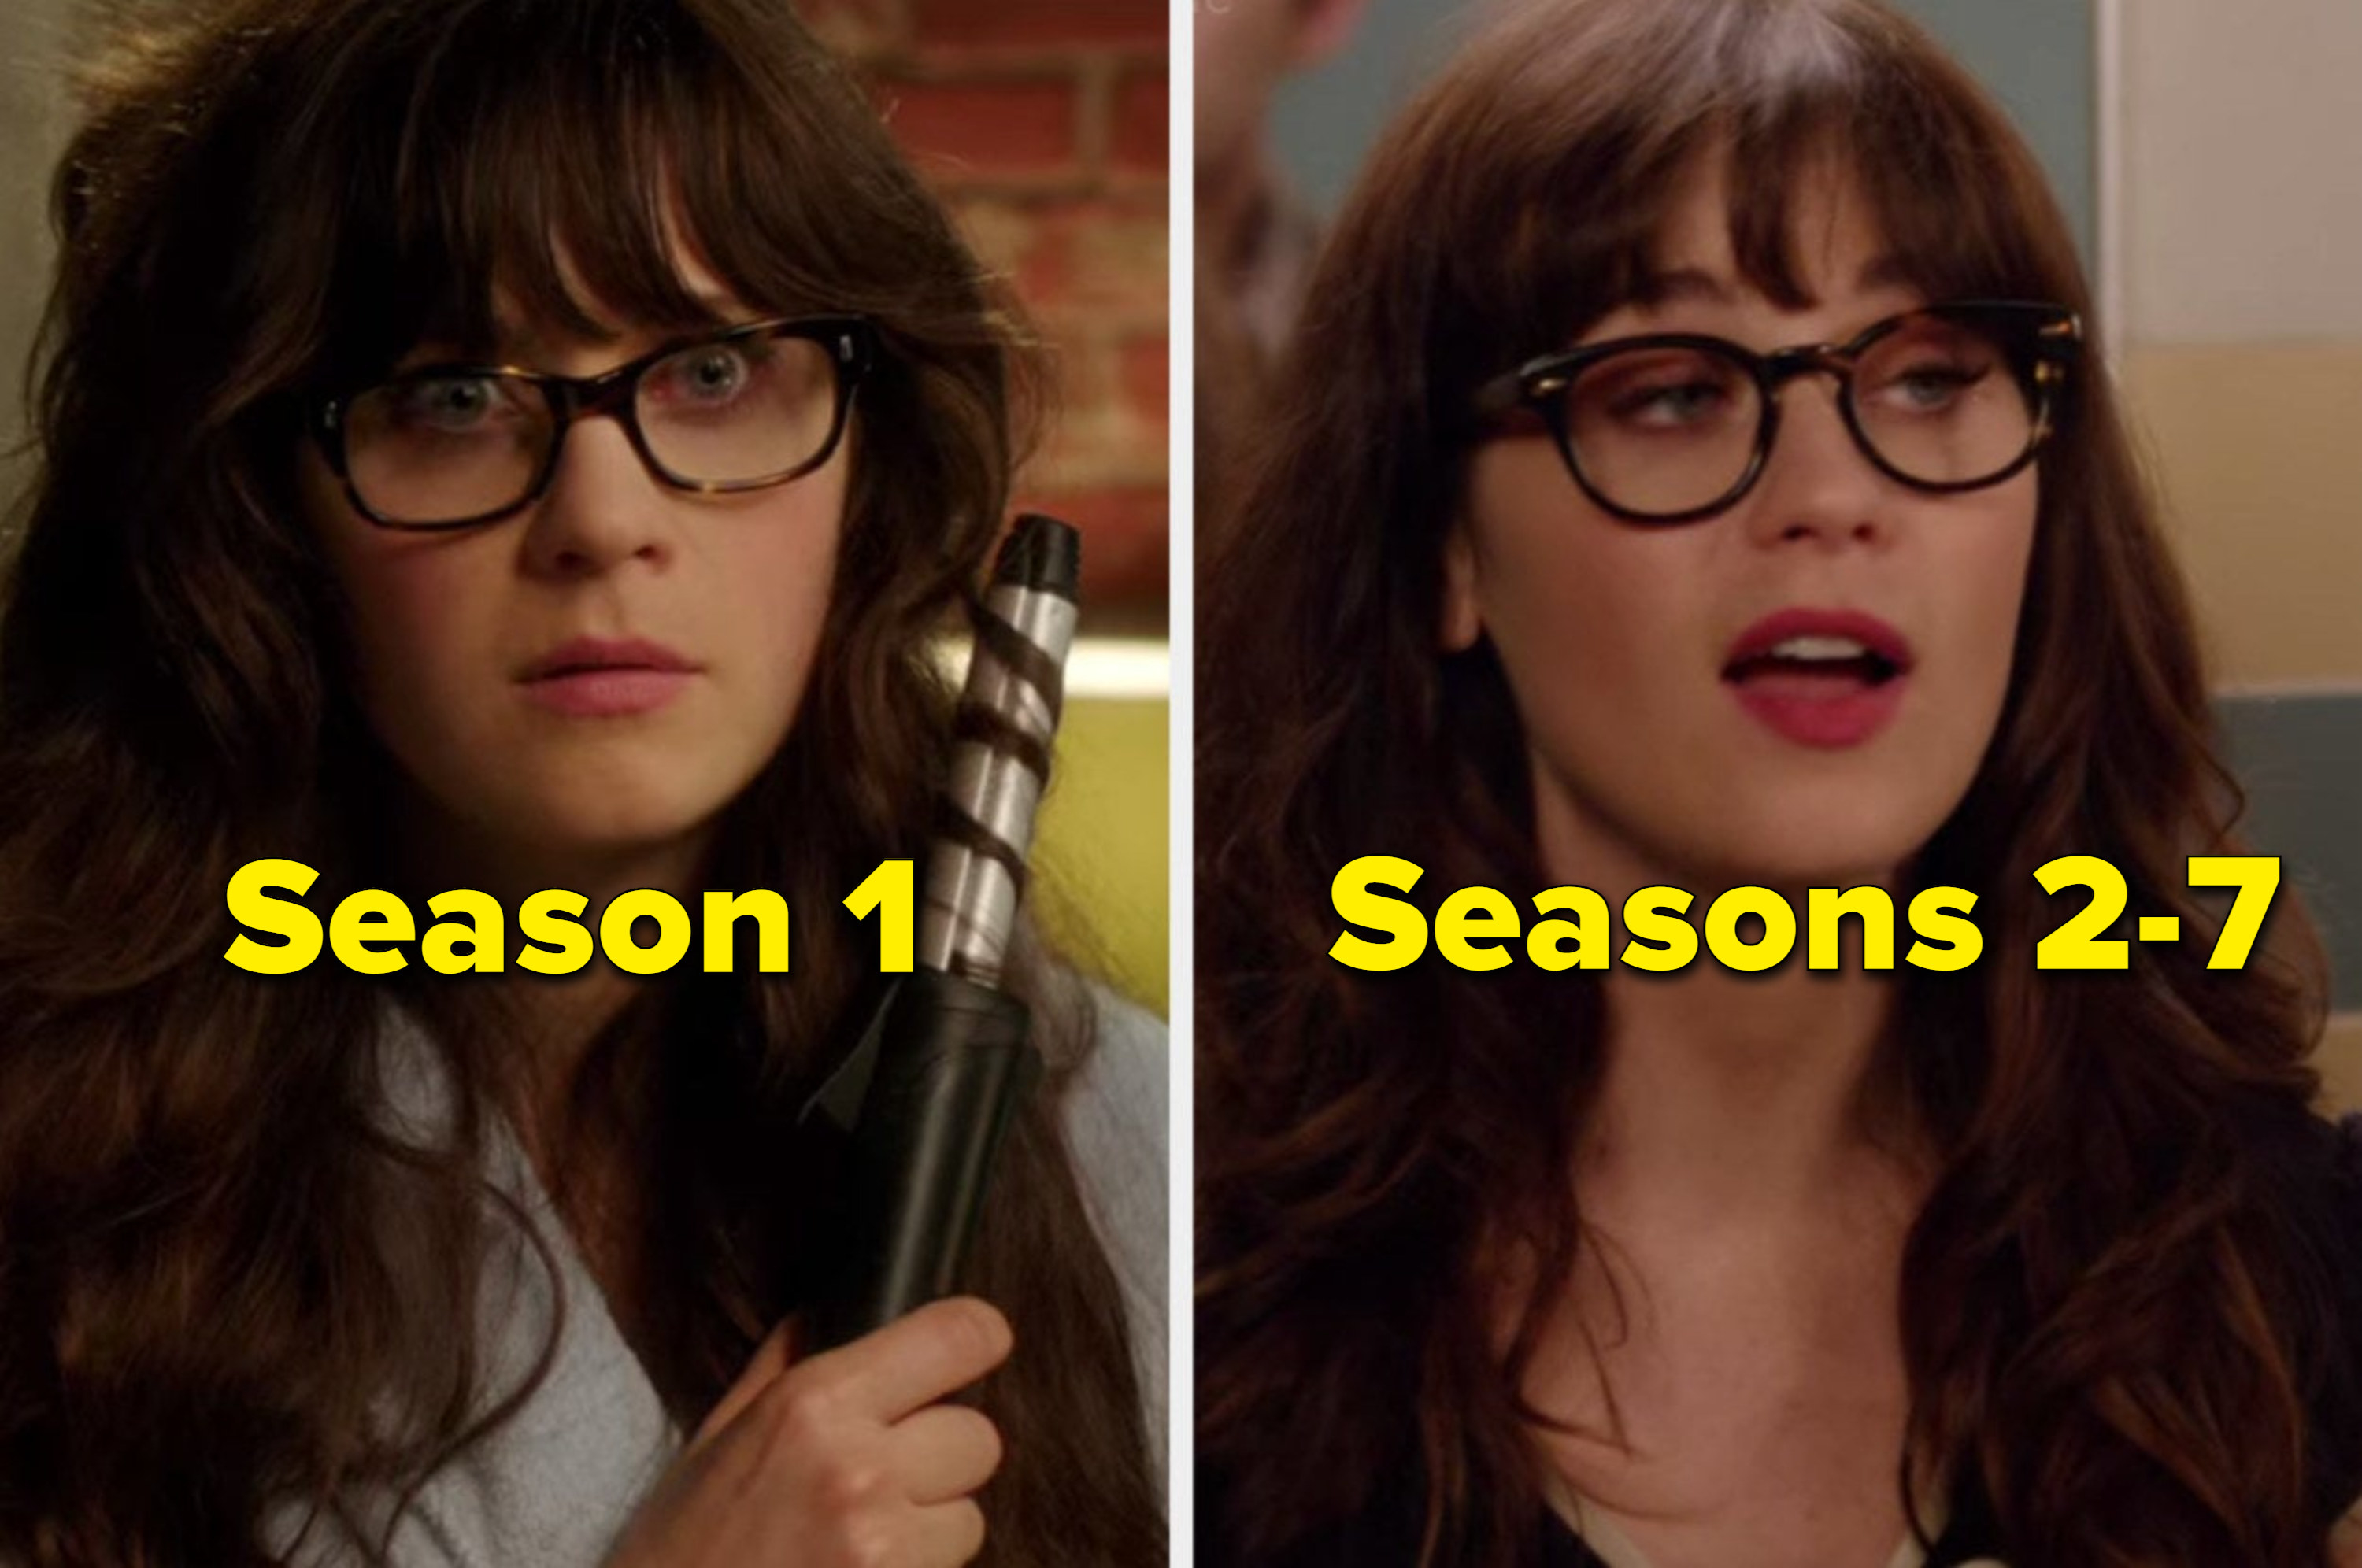 Jess with square glasses in season one and jess with round glasses in seasons 2-7